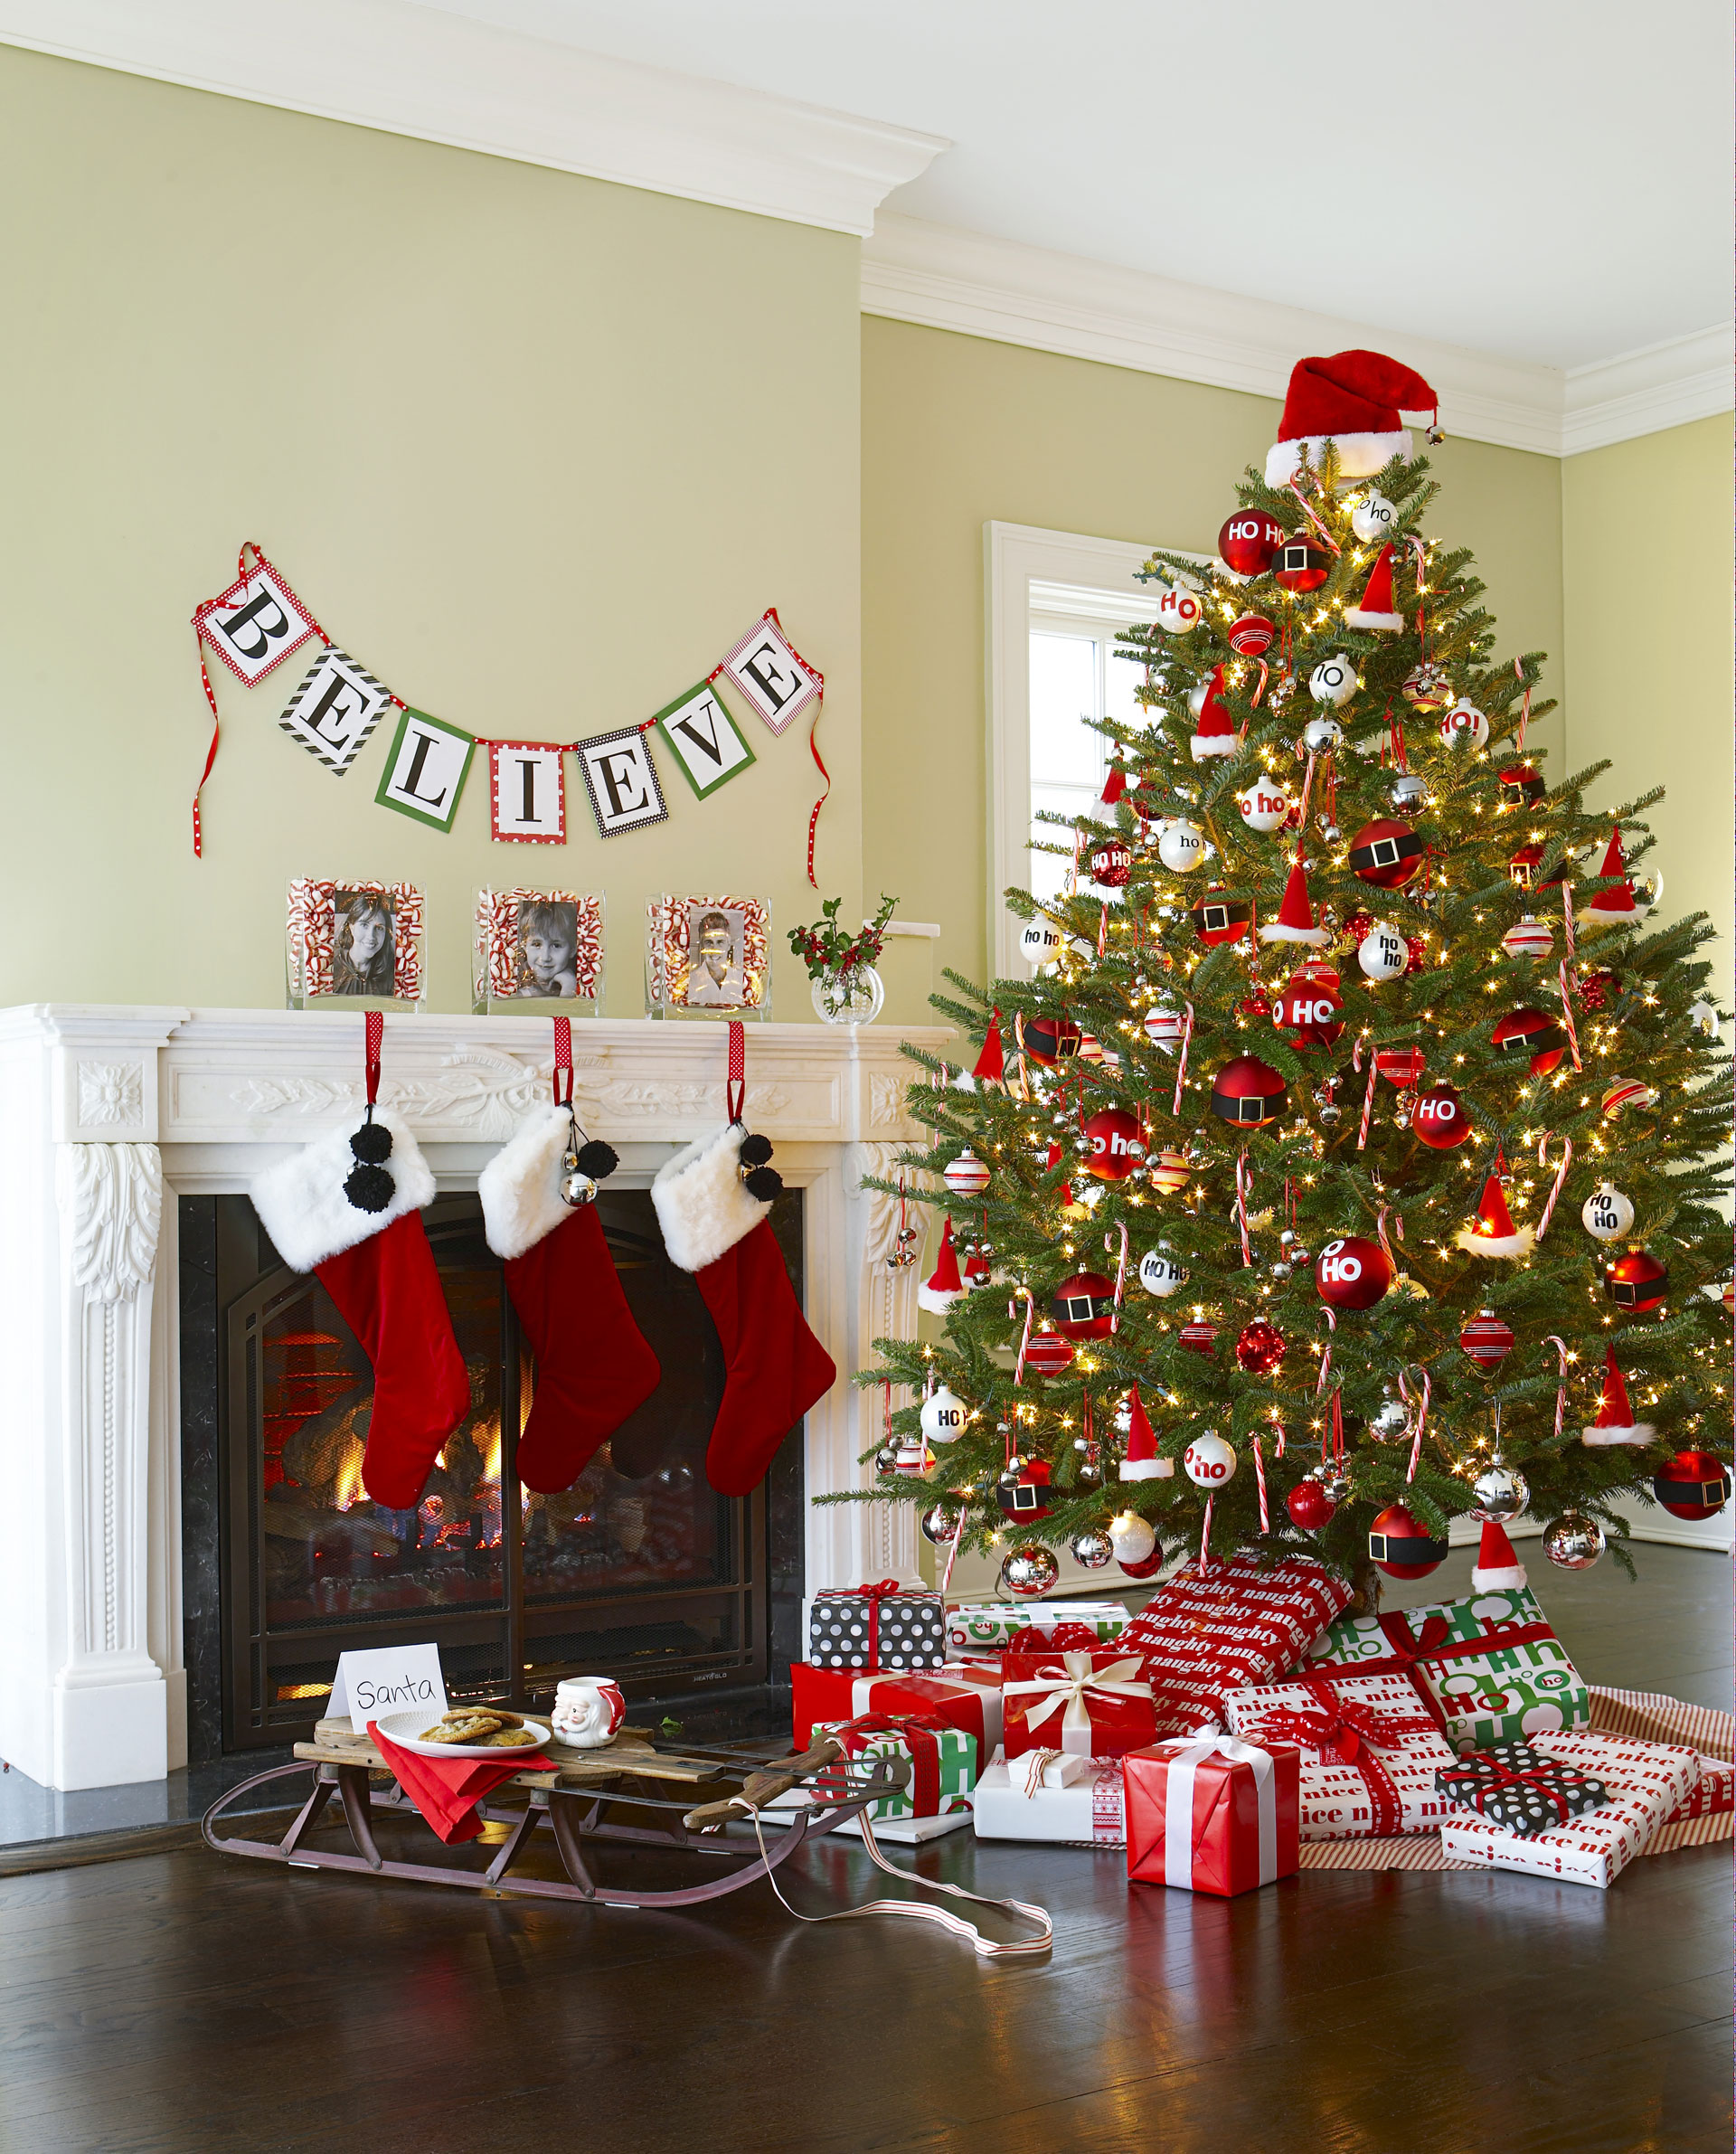 Best Christmas Party Themes Ideas For A Holiday Party - Christmas theme decorating ideas